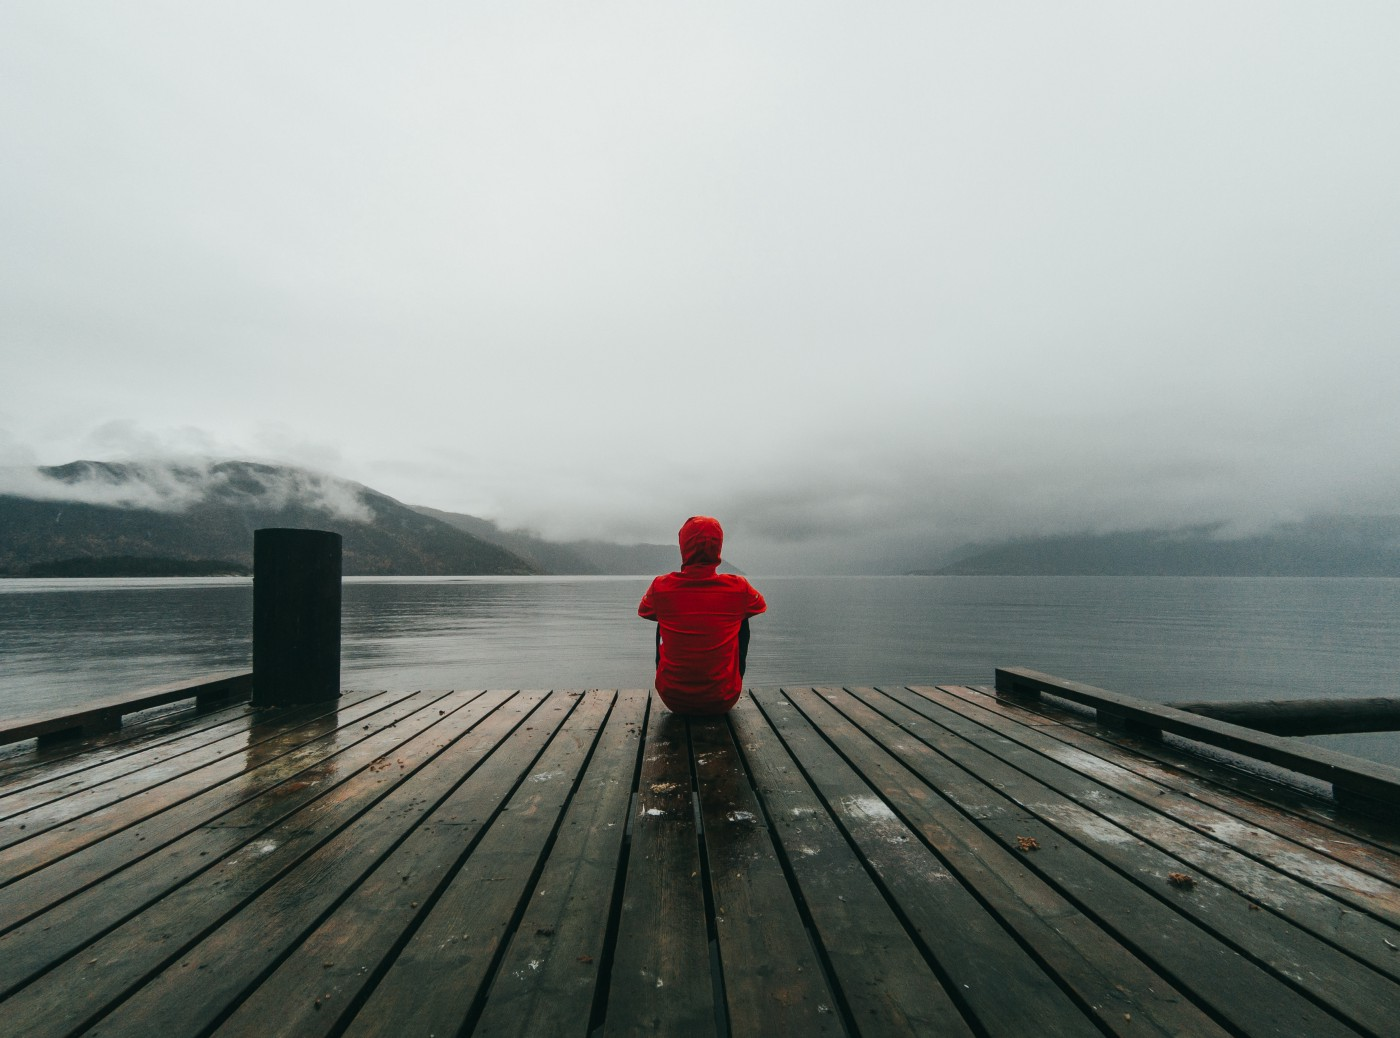 A person sitting on a wintry dock overlooking the water.